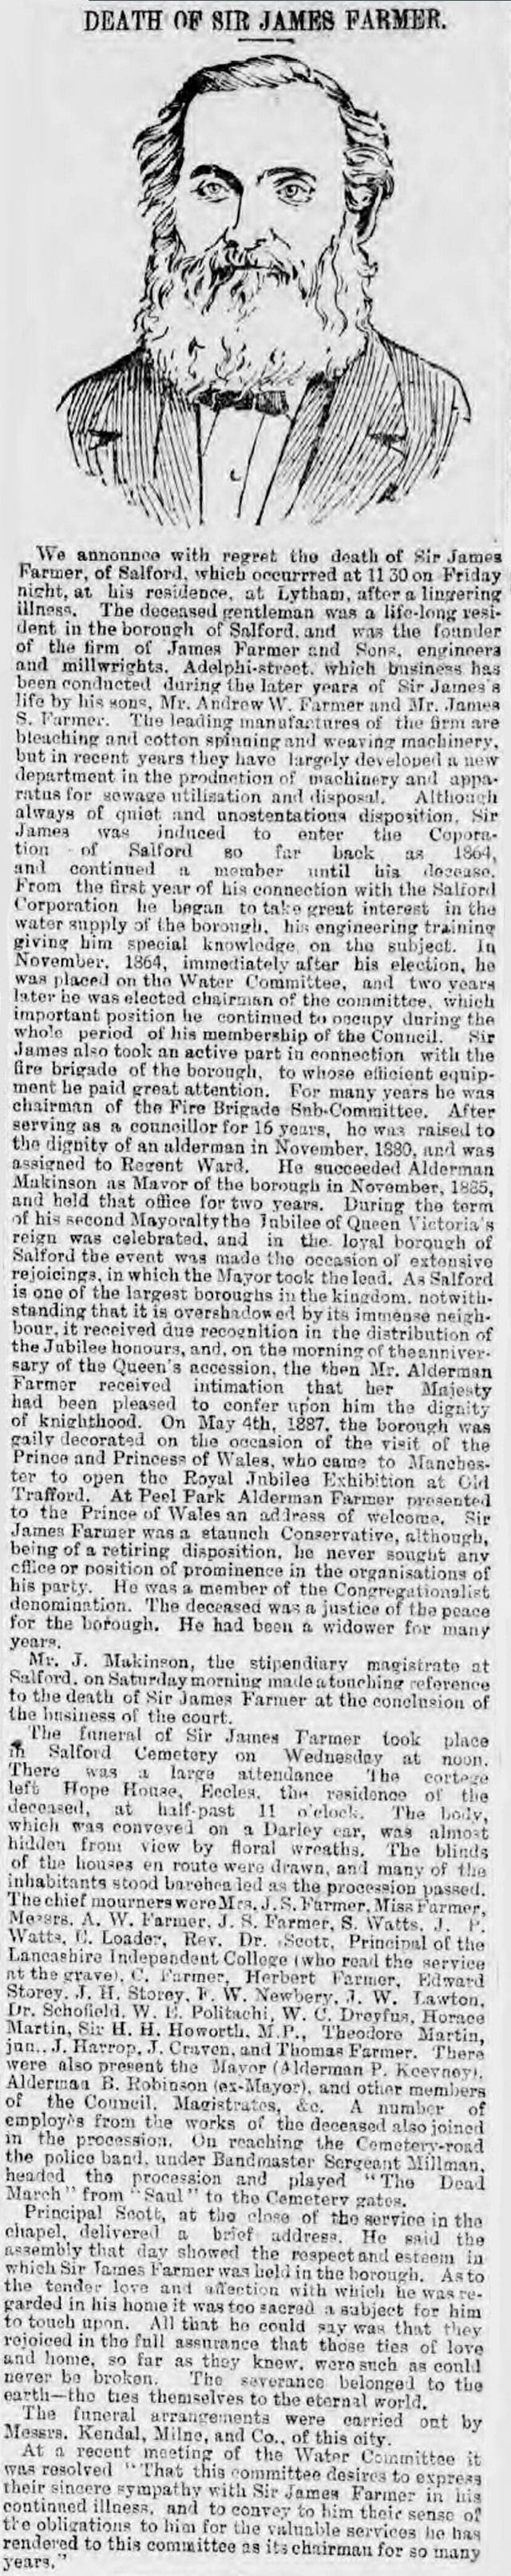 Obituary of Sir James Farmer